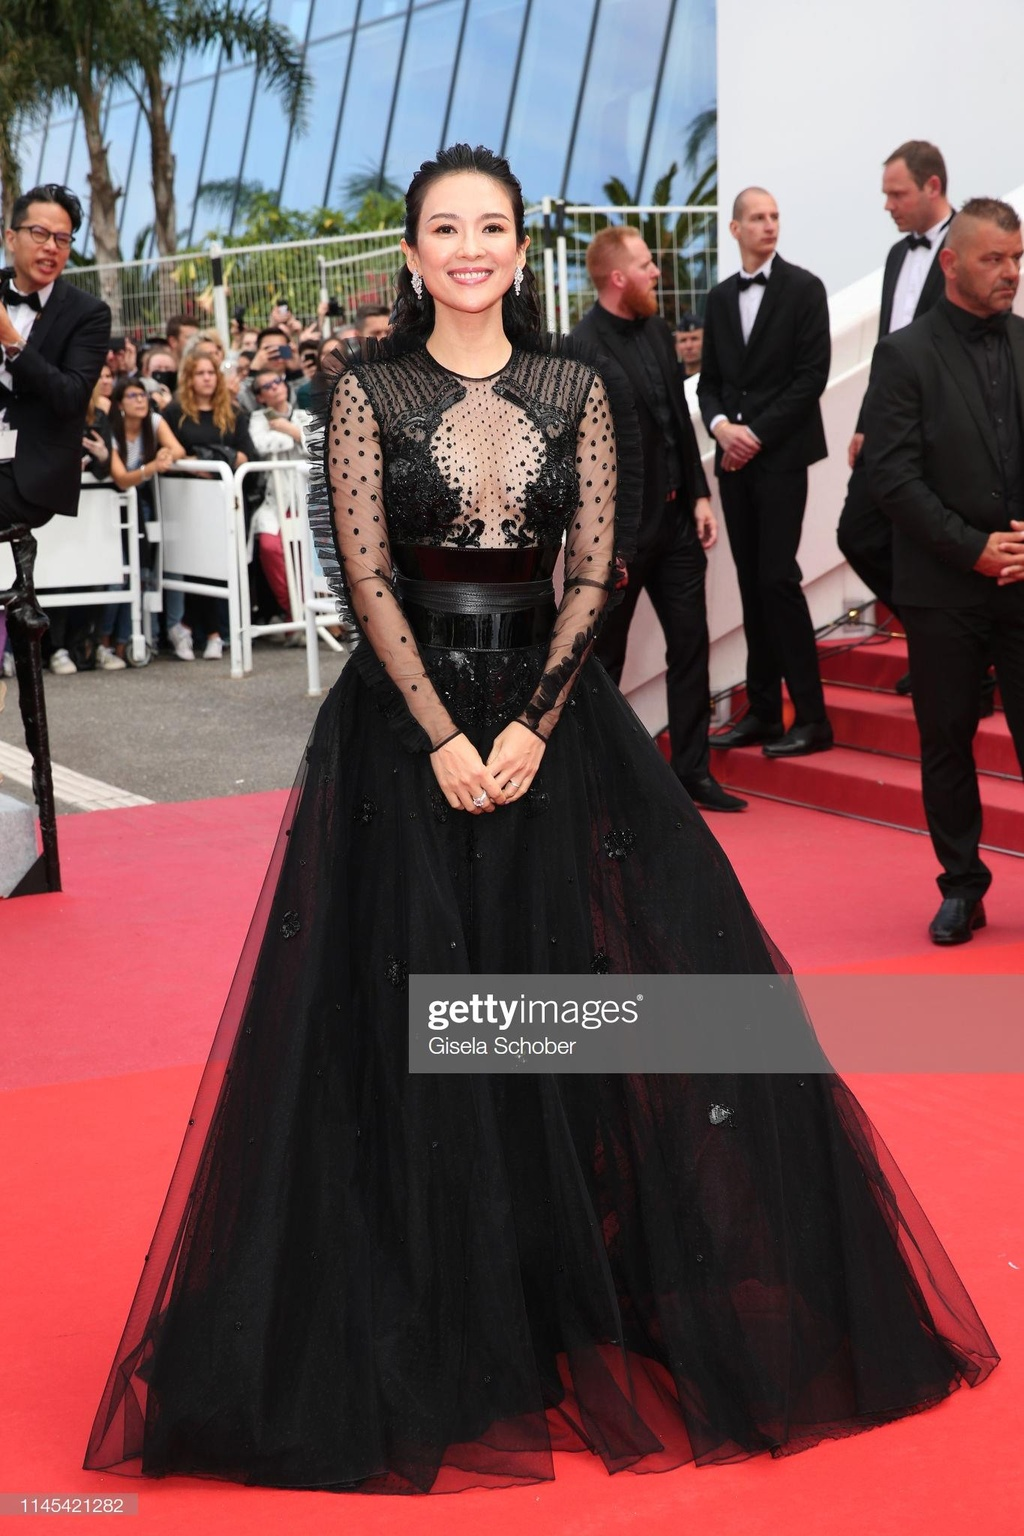 Lien hoan phim Cannes 2019 anh 1